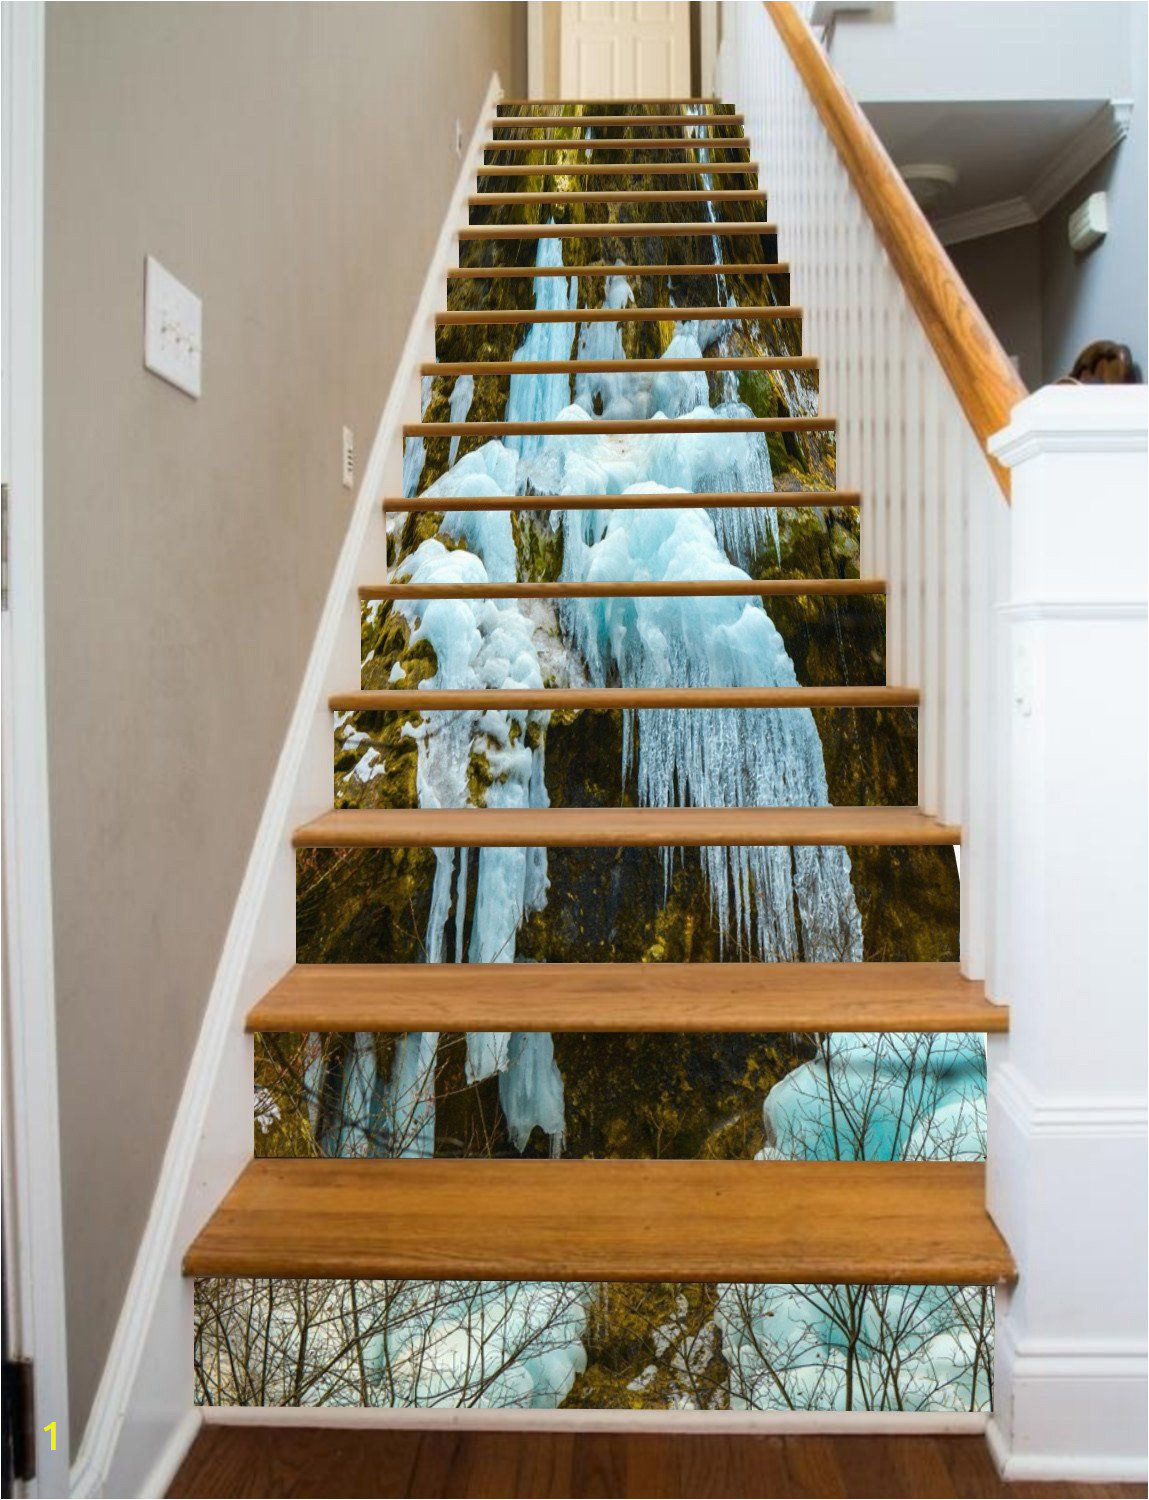 Murals for Stairway Walls 3d Ice and Snow 752 Stair Risers In 2019